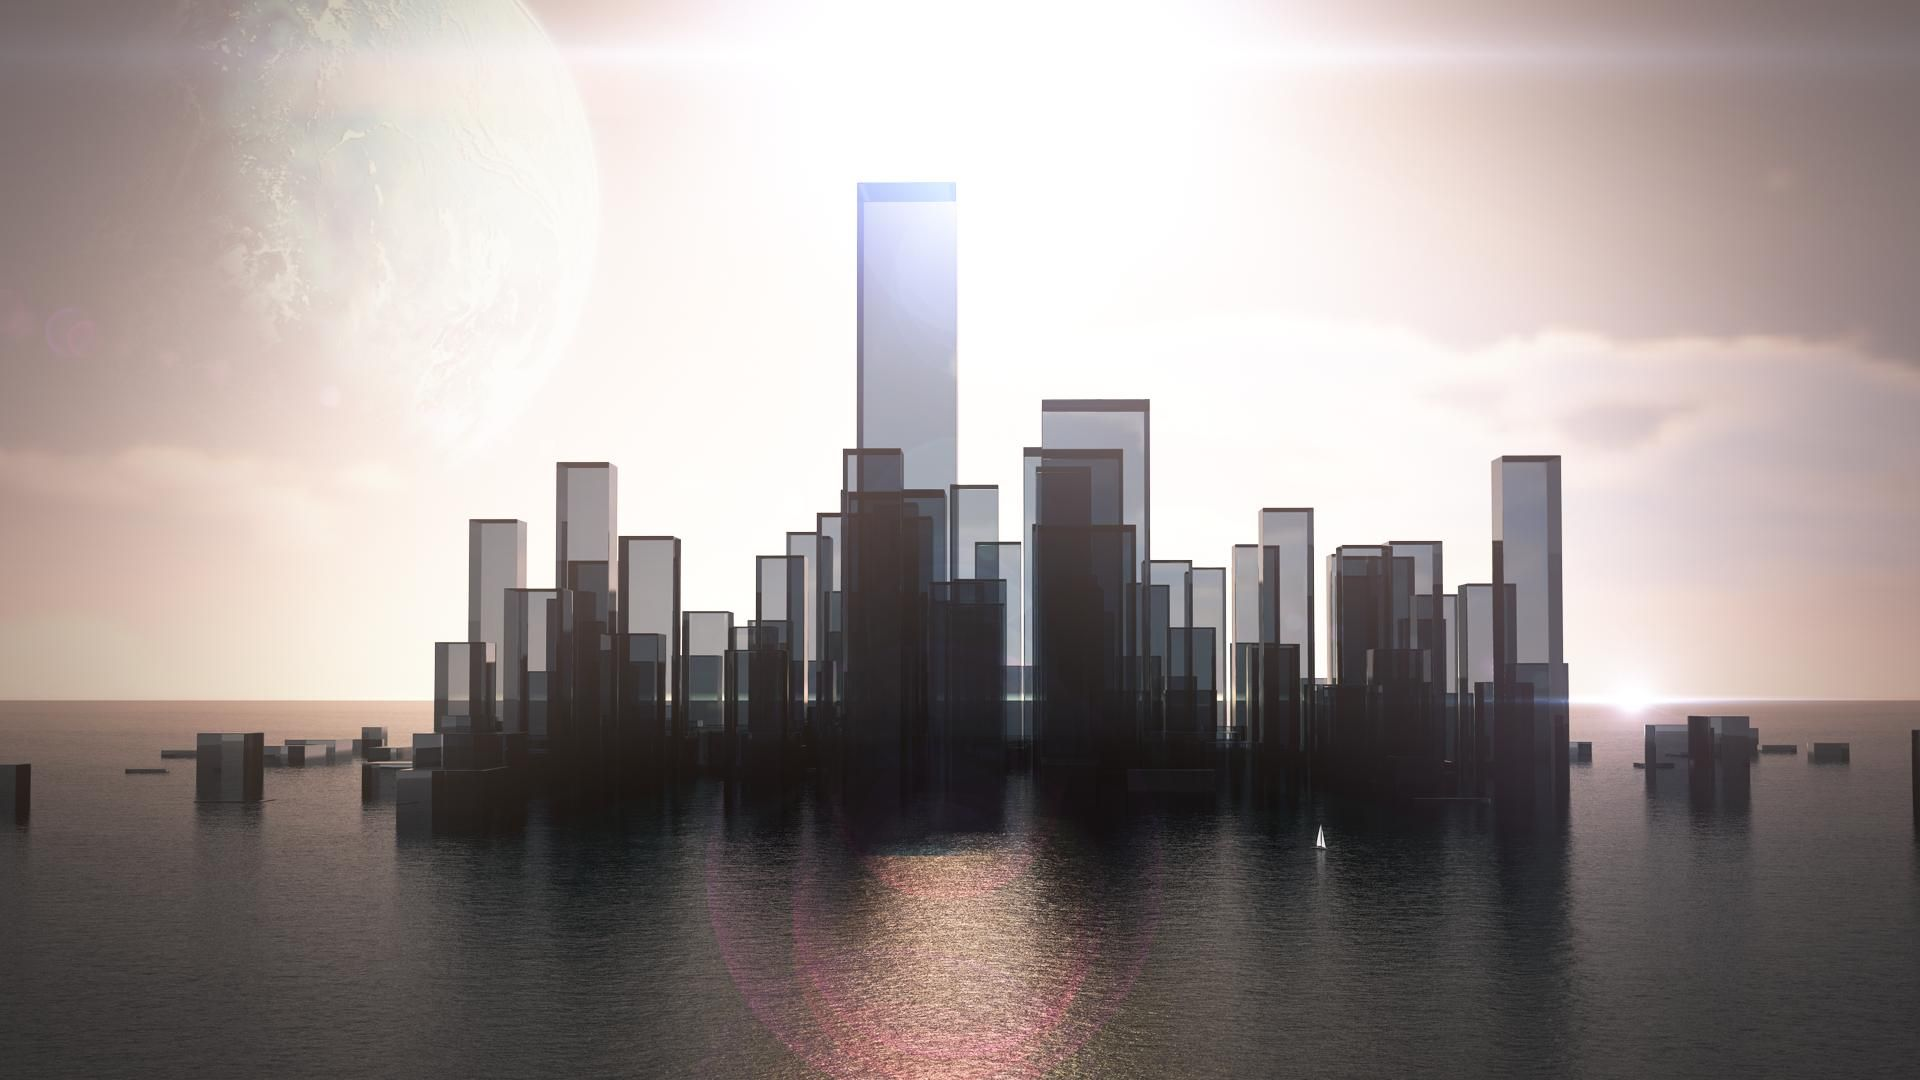 Abstract City Wallpapers Images Free Download Cityscape Wallpaper Abstract Wallpaper Abstract City